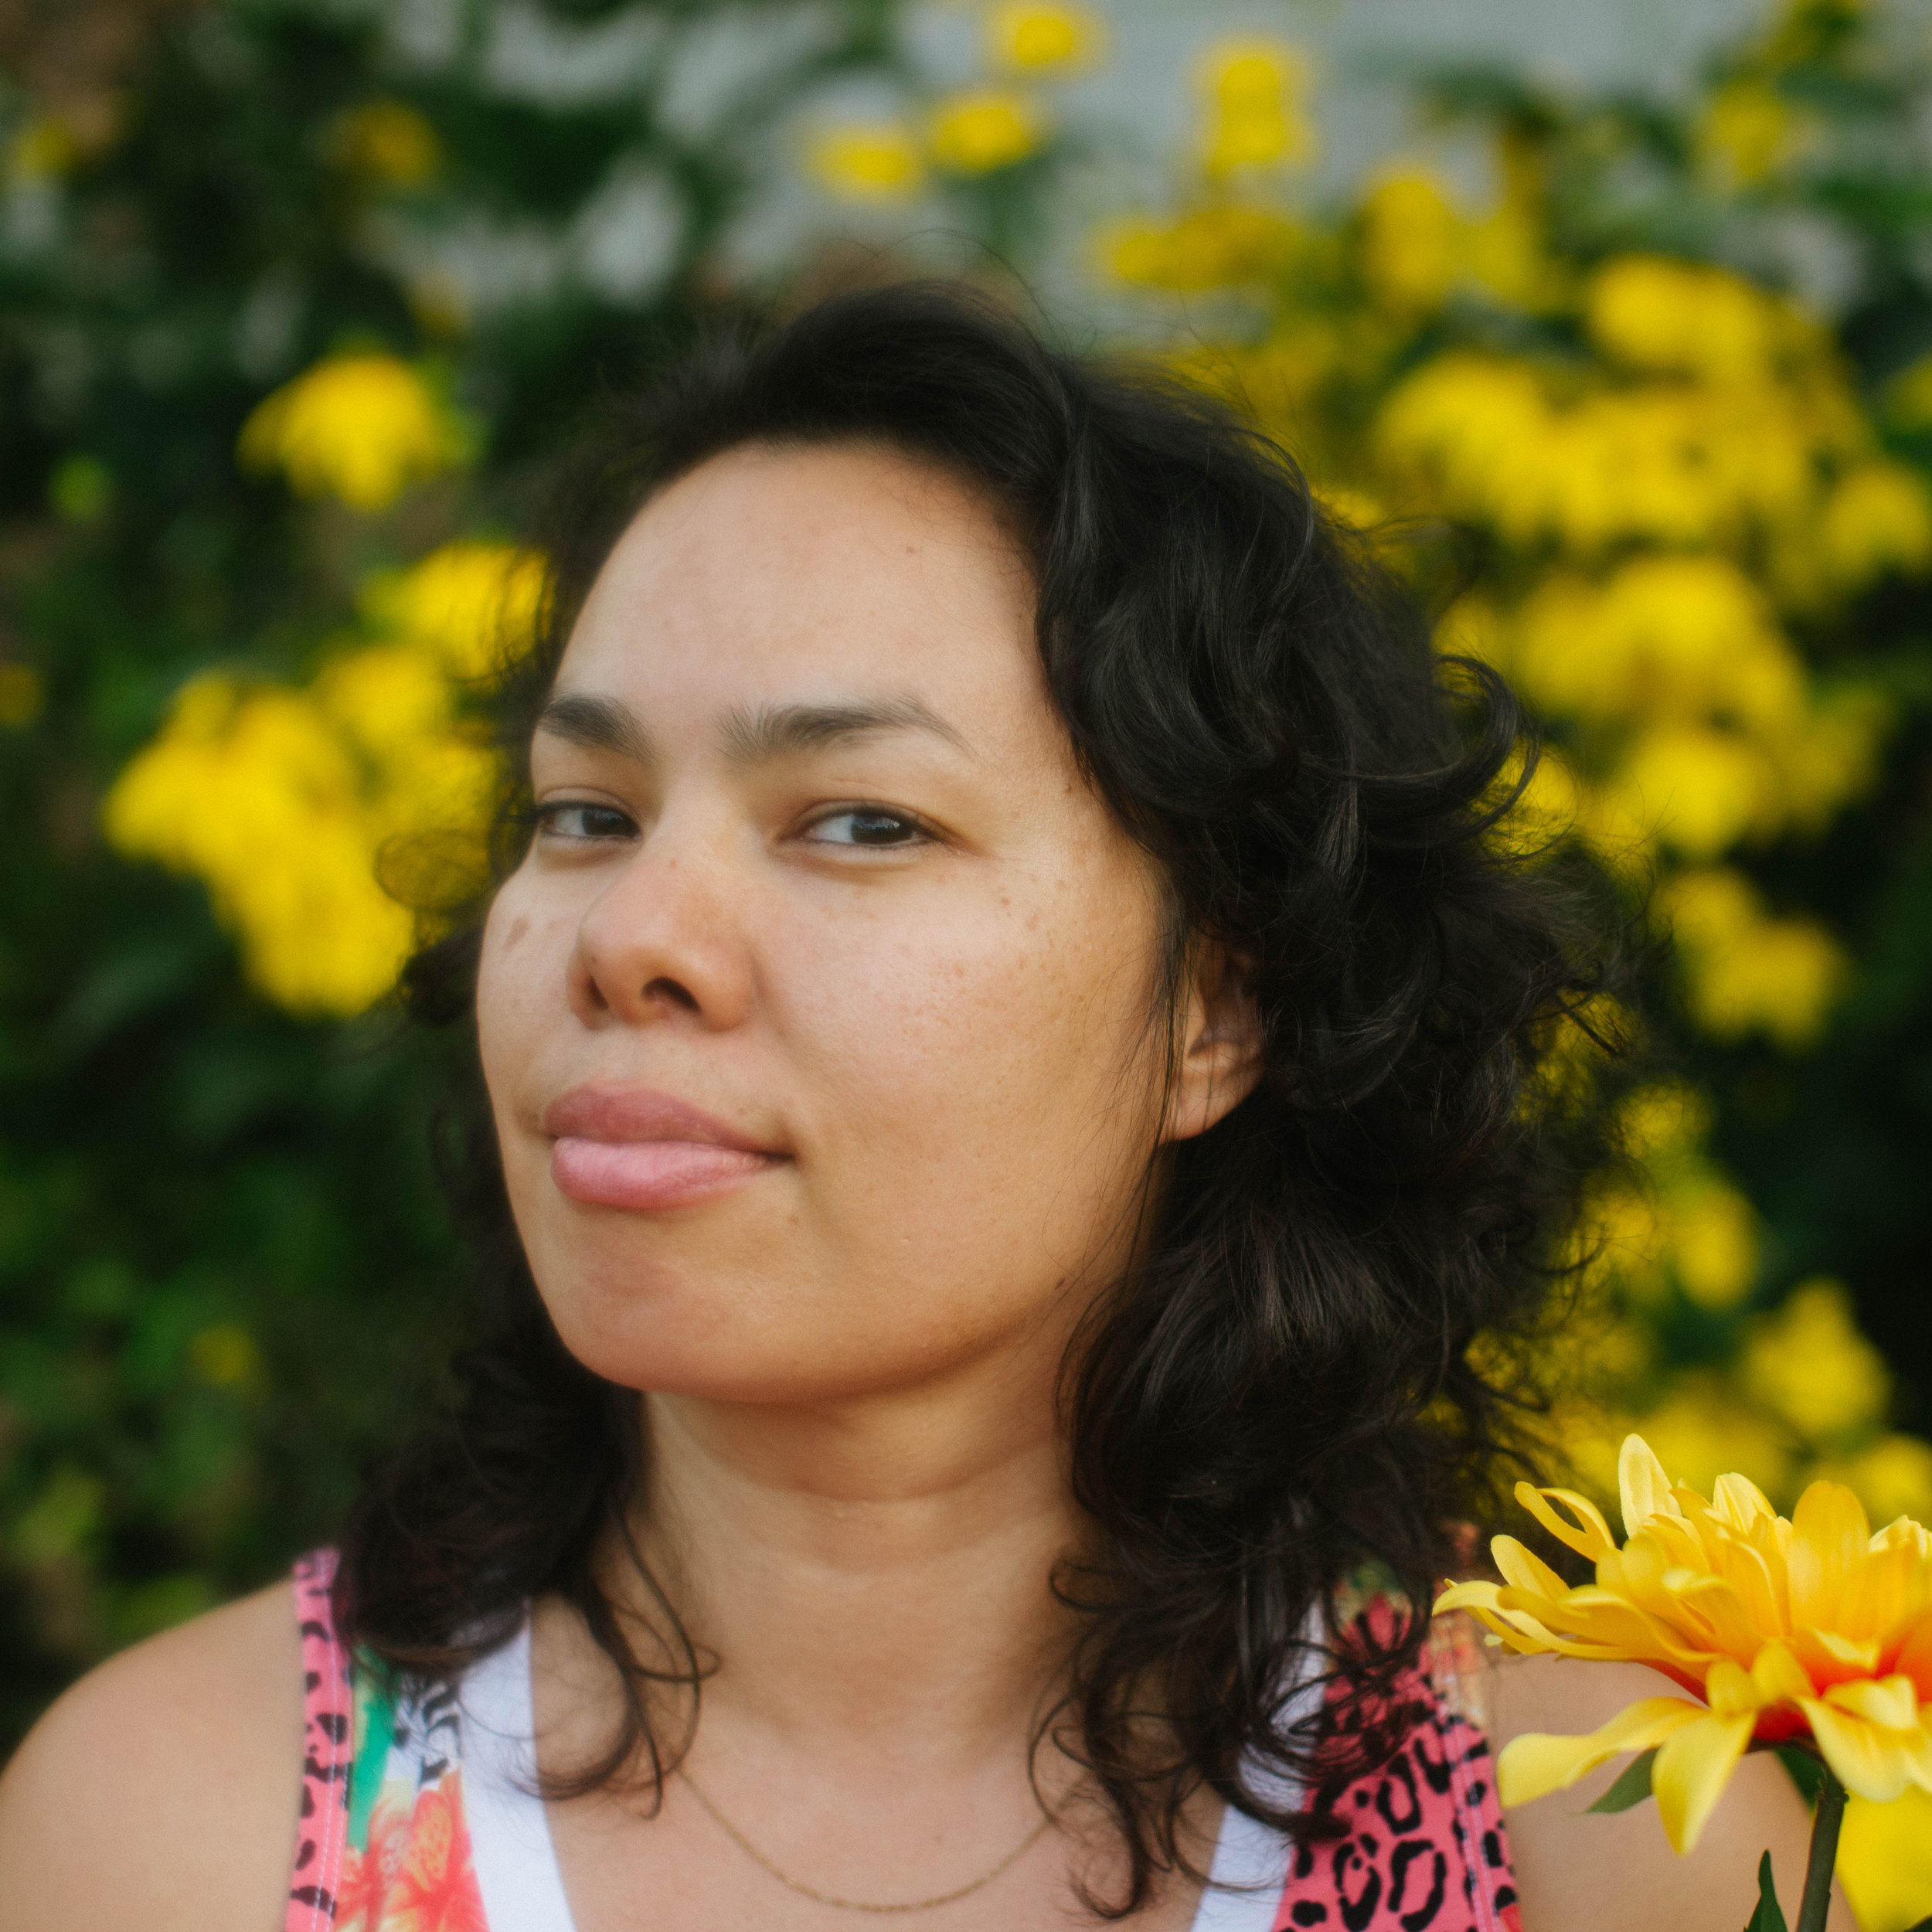 Directory - Find a BIPOC therapist in your community